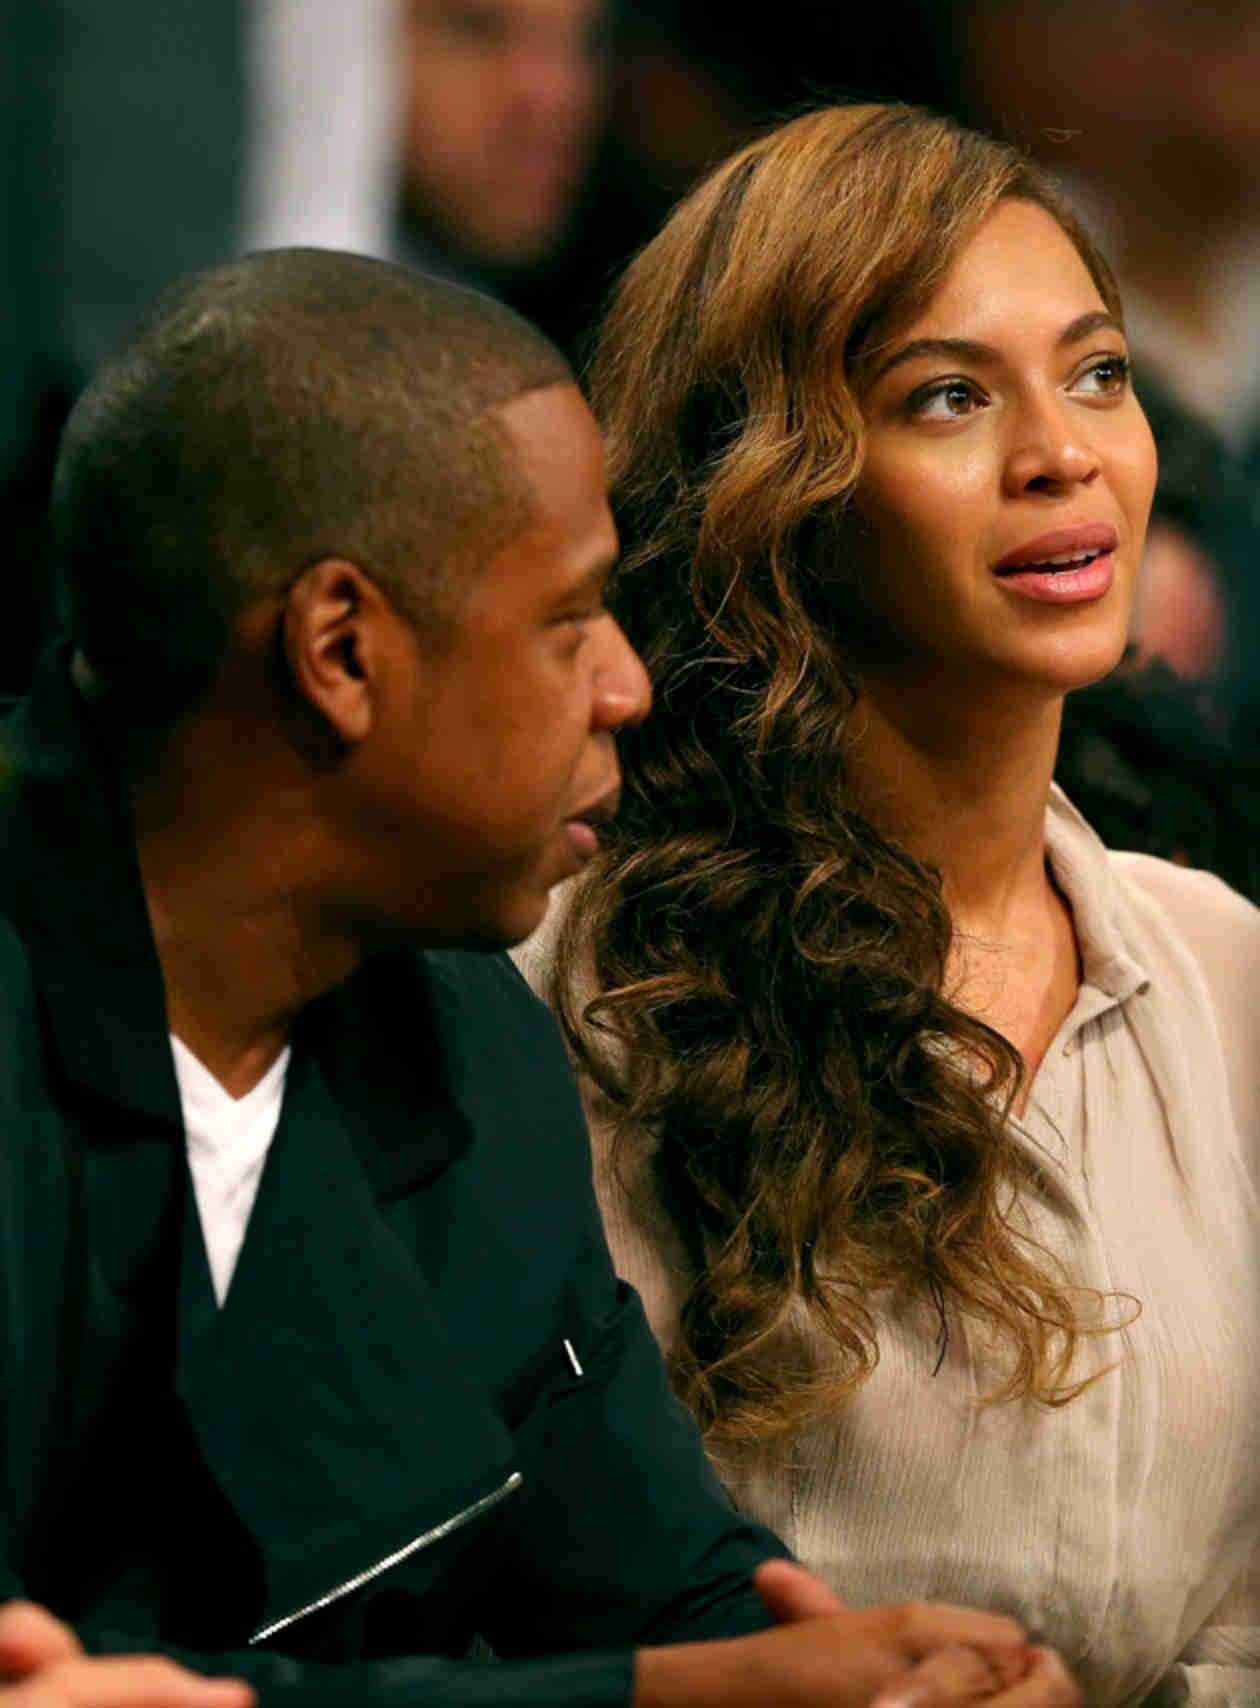 Jay-Z Planning a Vacation To Fix His Marriage With Beyonce — Report